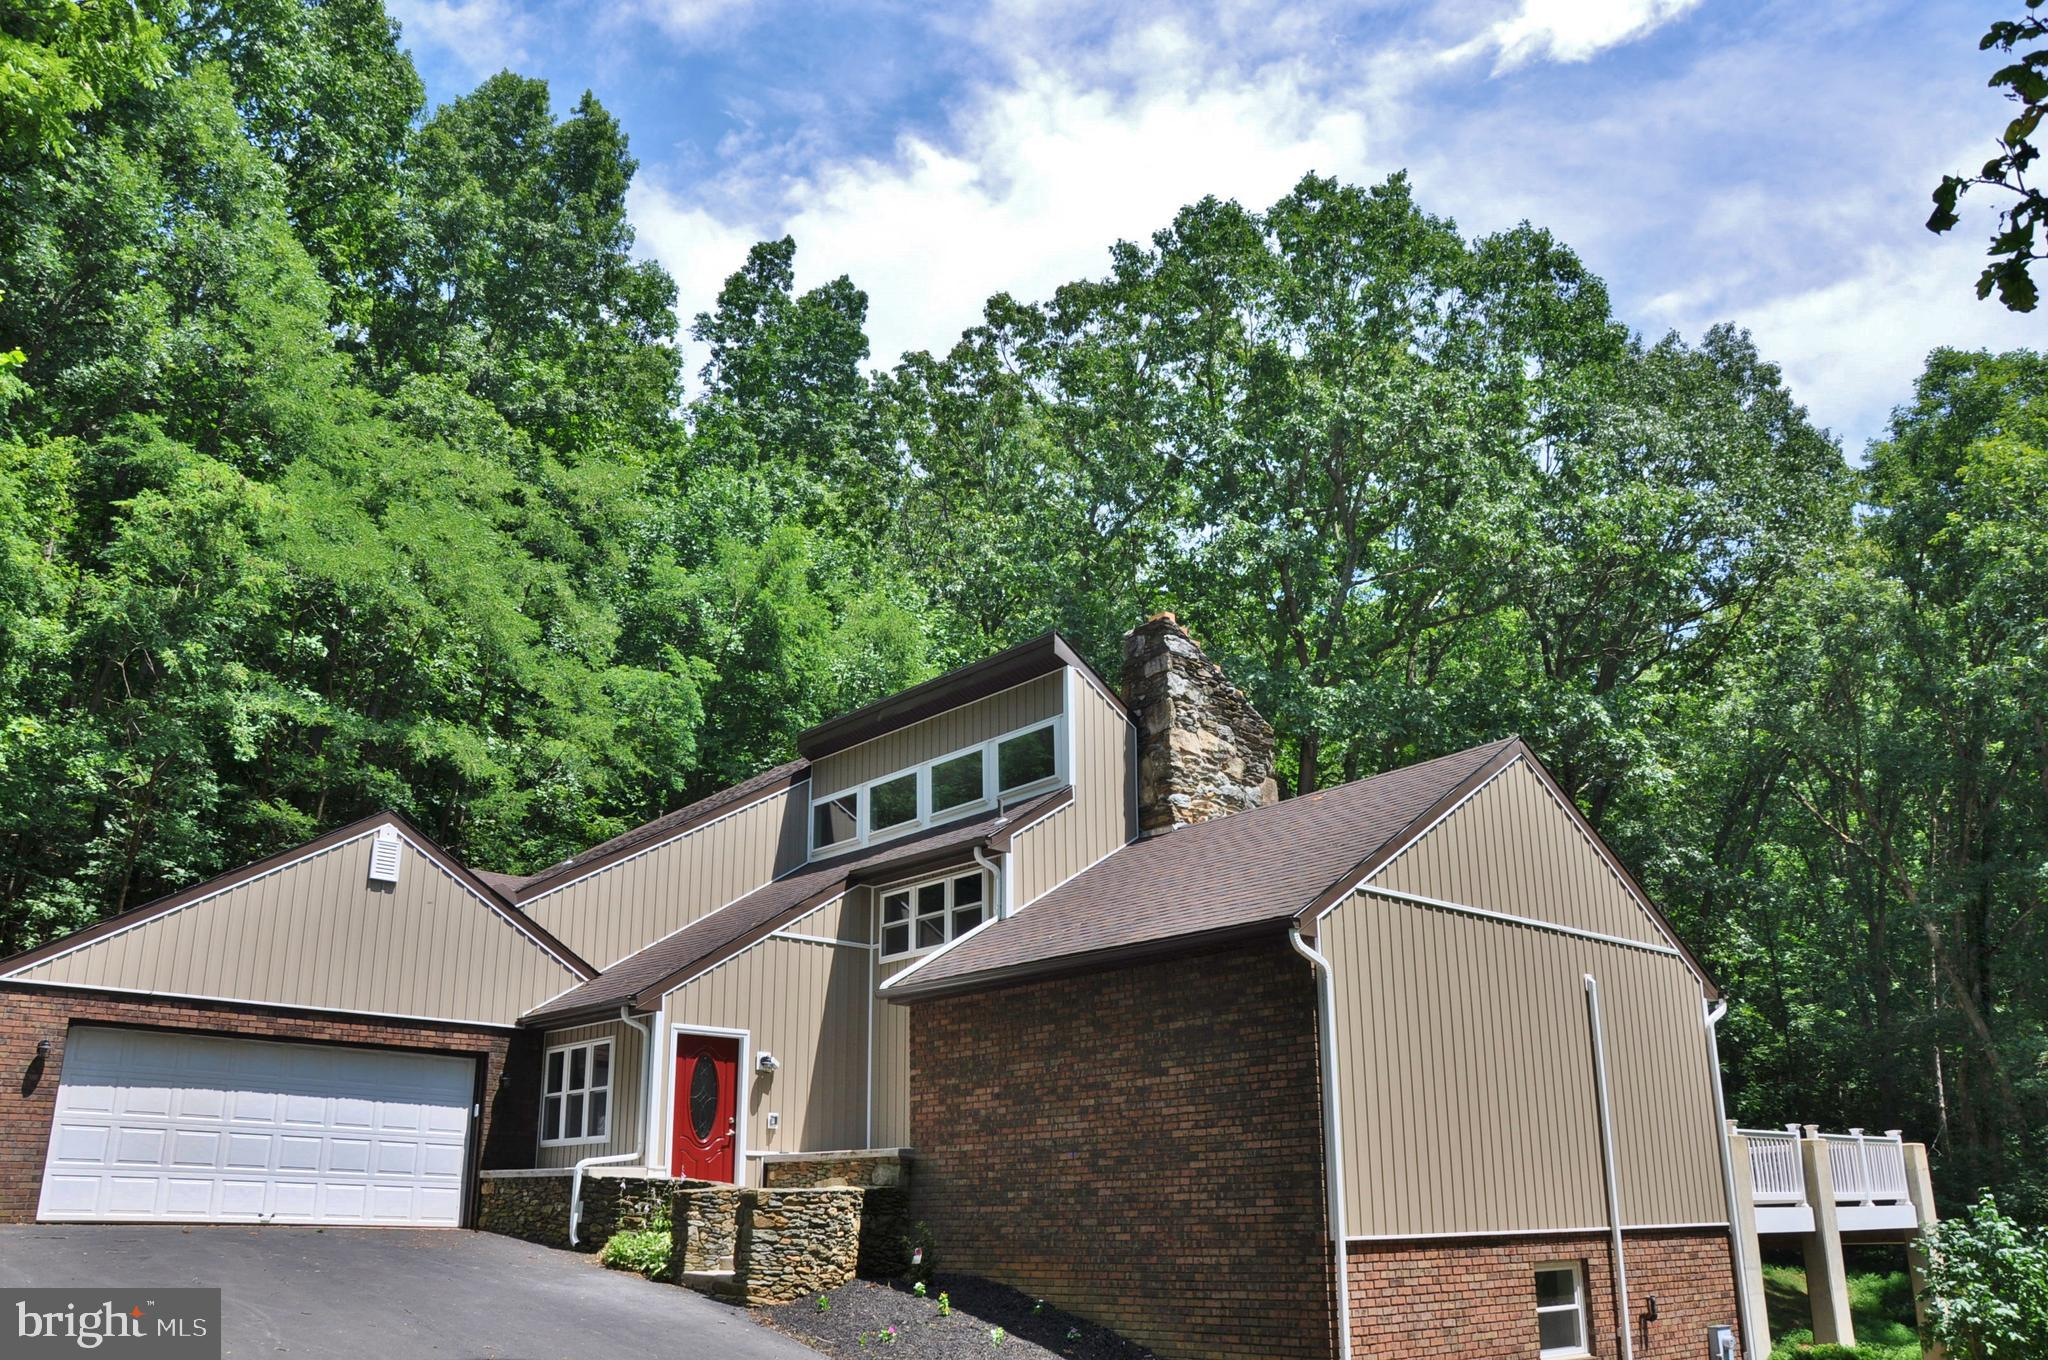 2441 SWAMP ROAD, DALLASTOWN, PA 17313